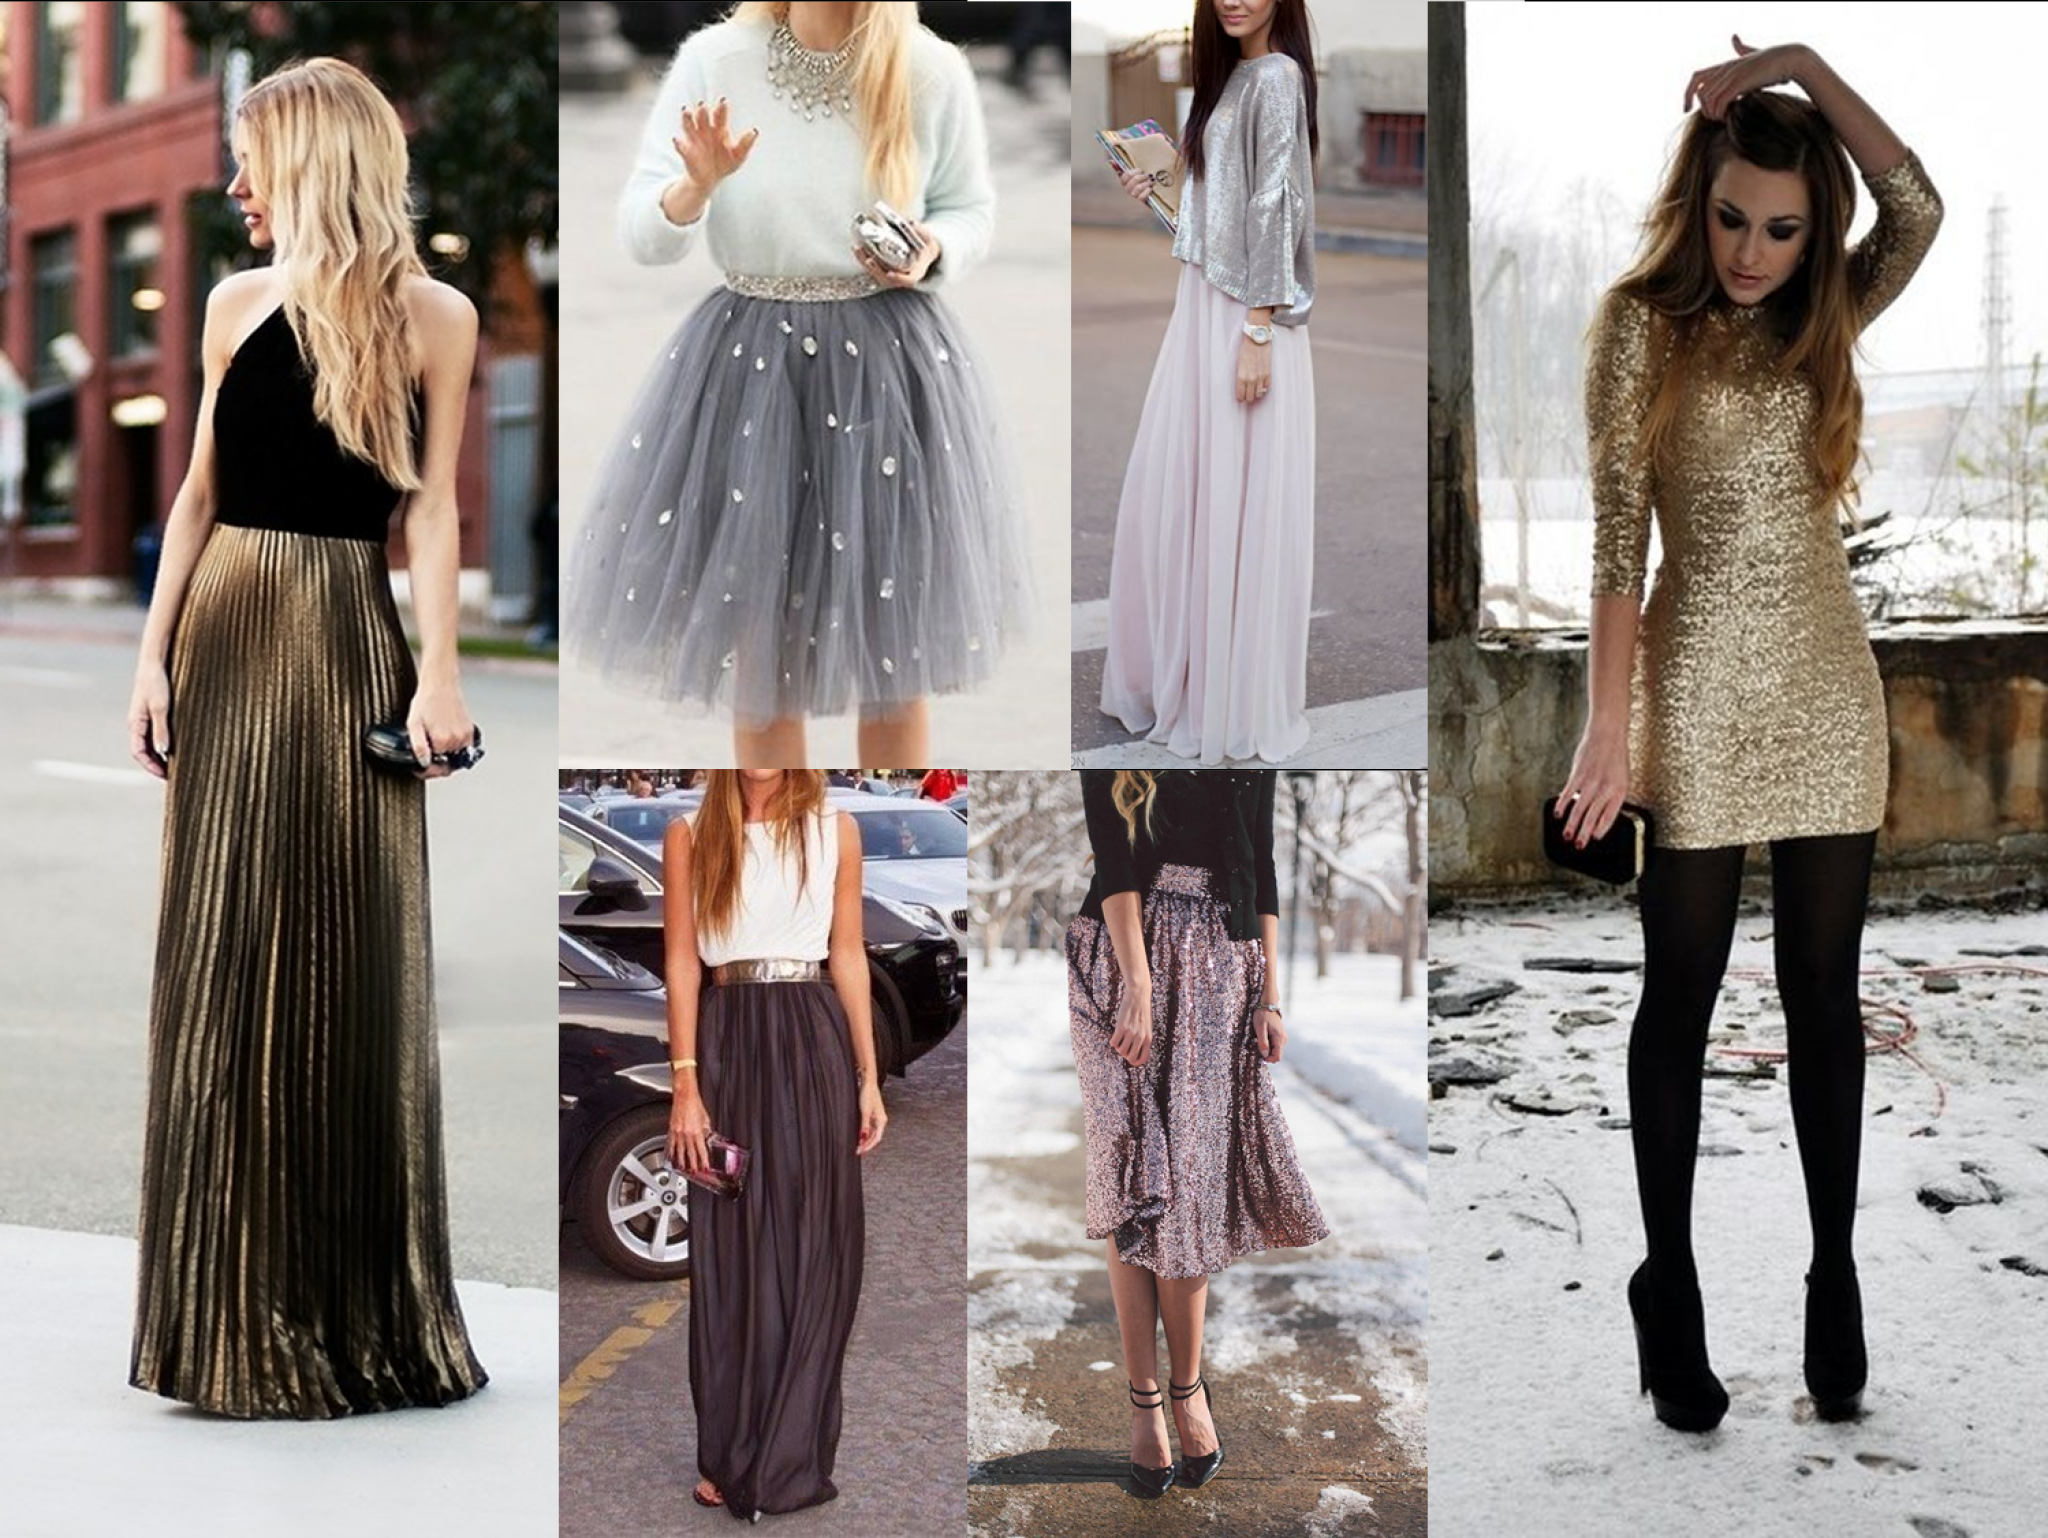 60 Formal Winter Wedding Outfits Ideas For Guest Vis Wed Winter Wedding Outfits Wedding Guest Outfit Winter Winter Dress Outfits [ 1093 x 820 Pixel ]